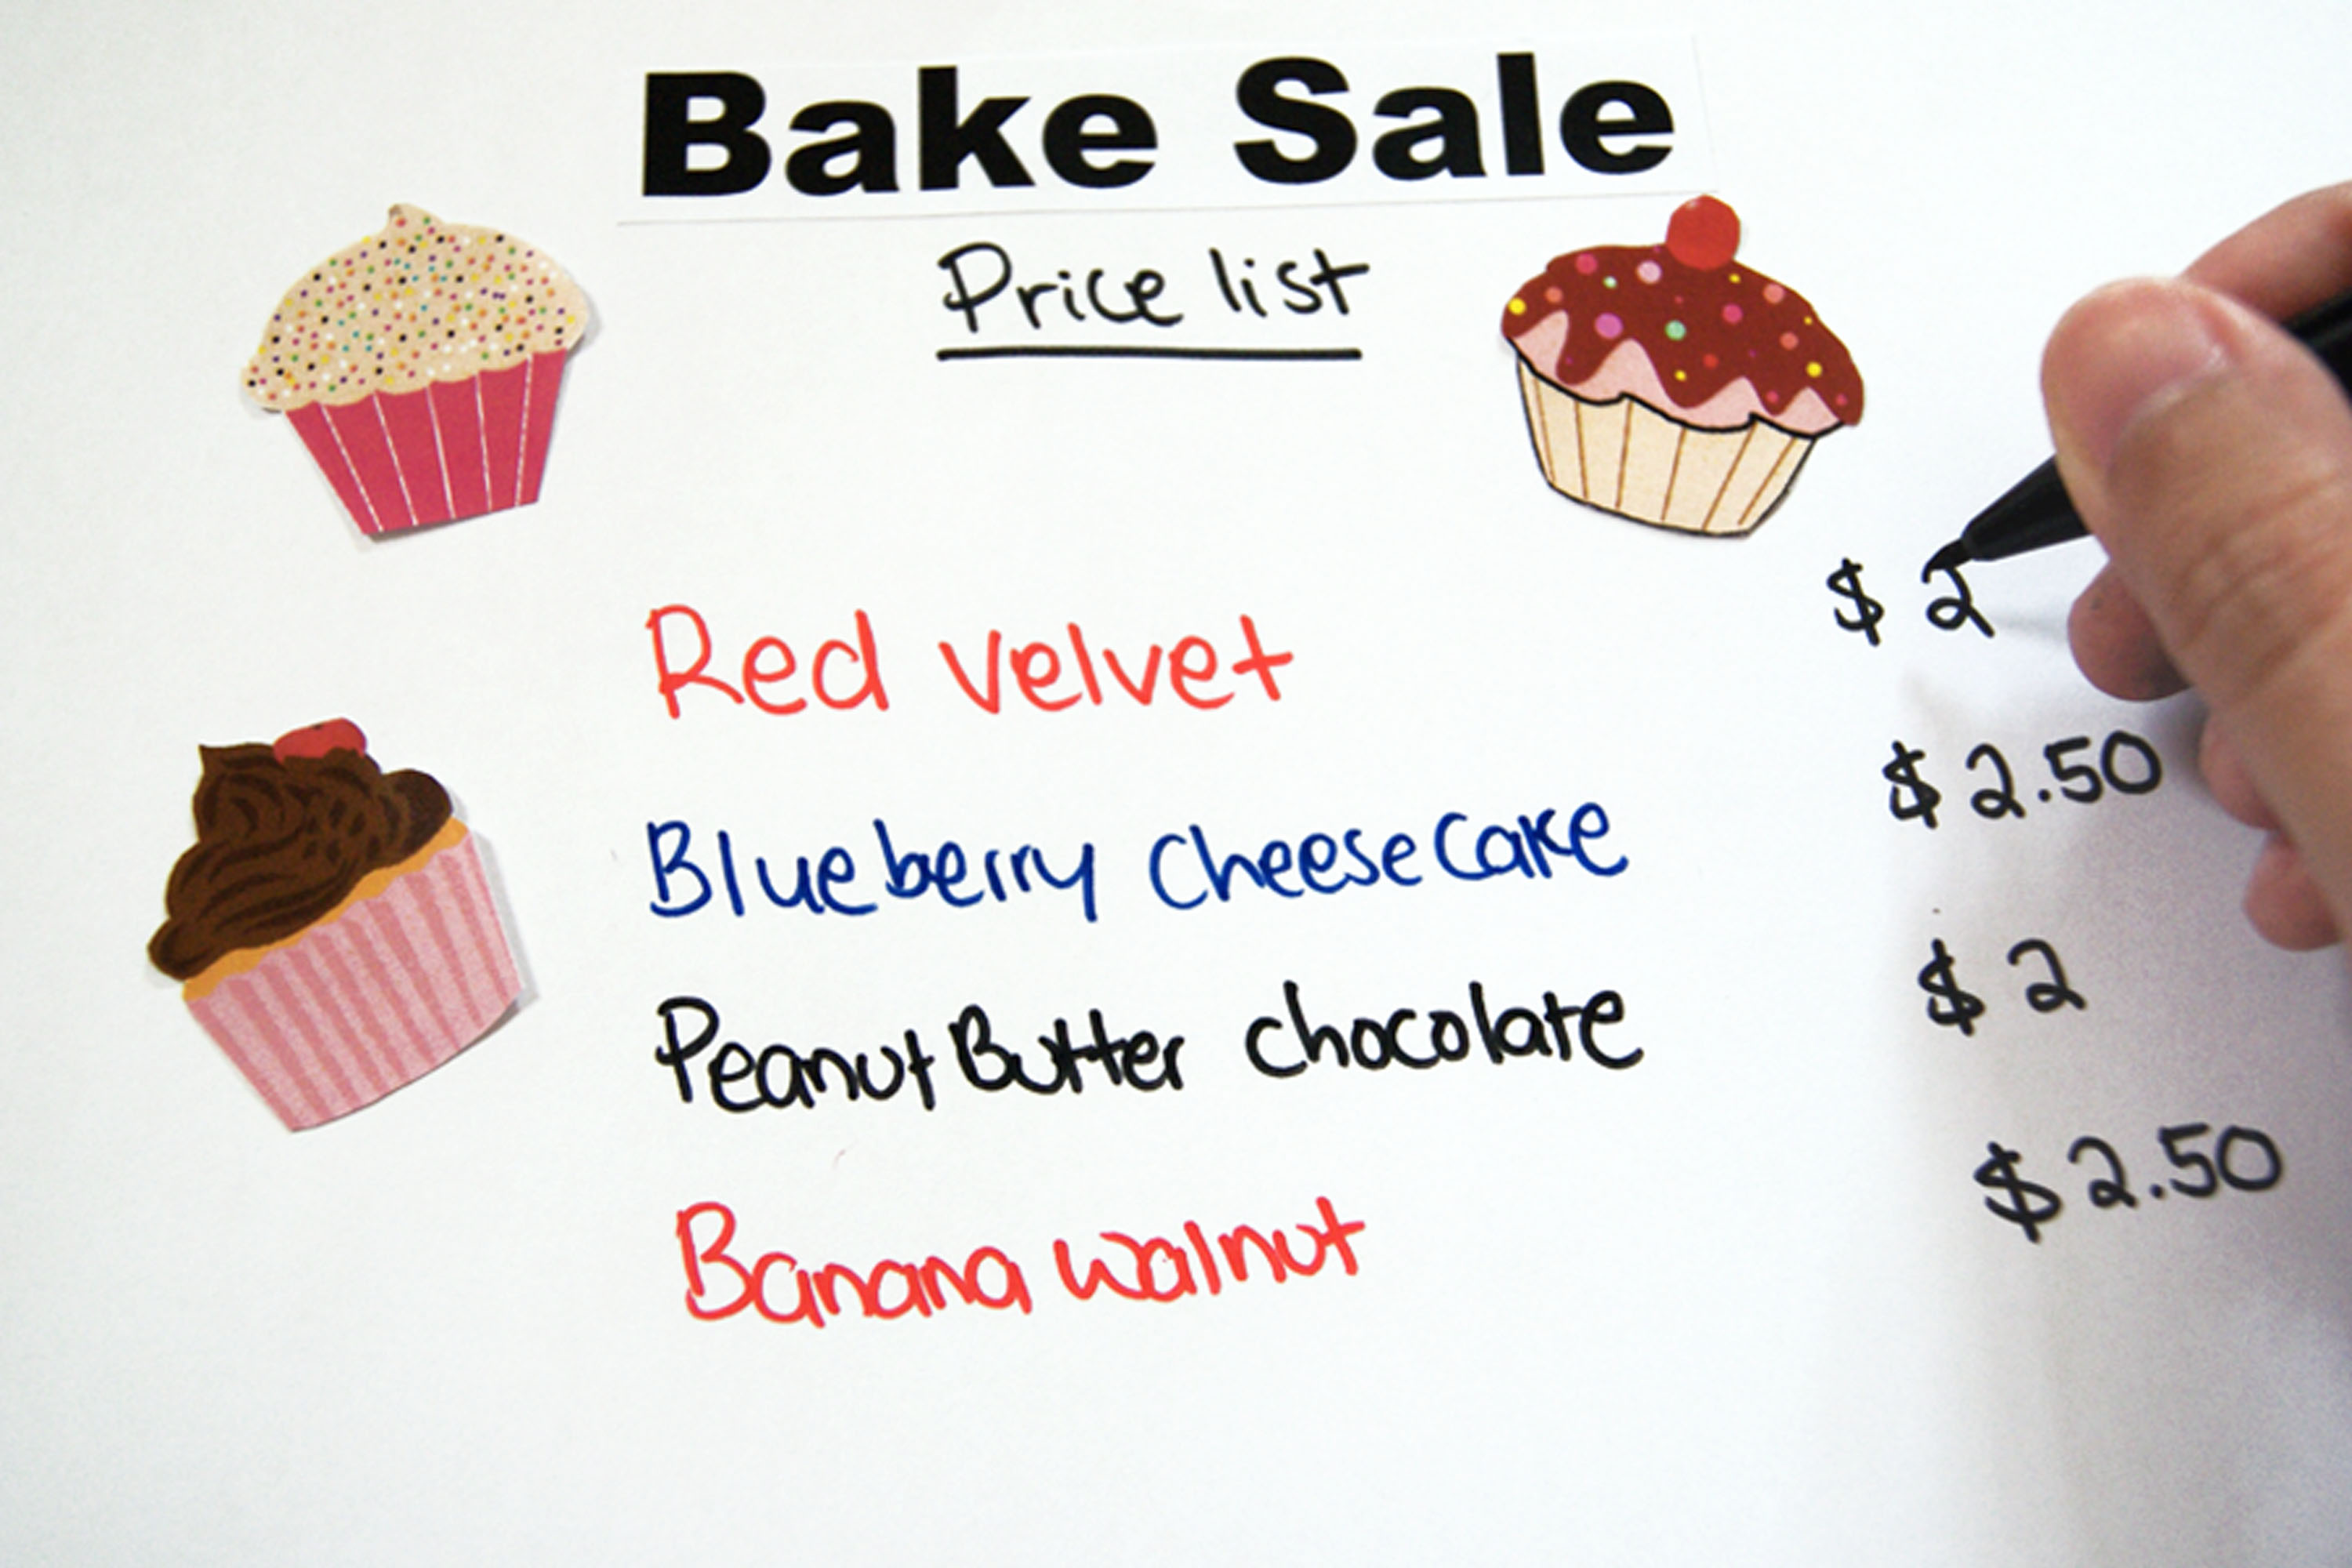 Bake Sale Sign Ideas  Our Everyday Life. Clinical Mental Health Counseling Graduate Programs. Prescription Pad Template Free. Wrap Around Label Template. Resume Template Free Online. Order Confirmation Email Template. Create Your Own Mickey Mouse Invitations. Free Graduation Invitation Maker. Good Songs To Sing At Graduation